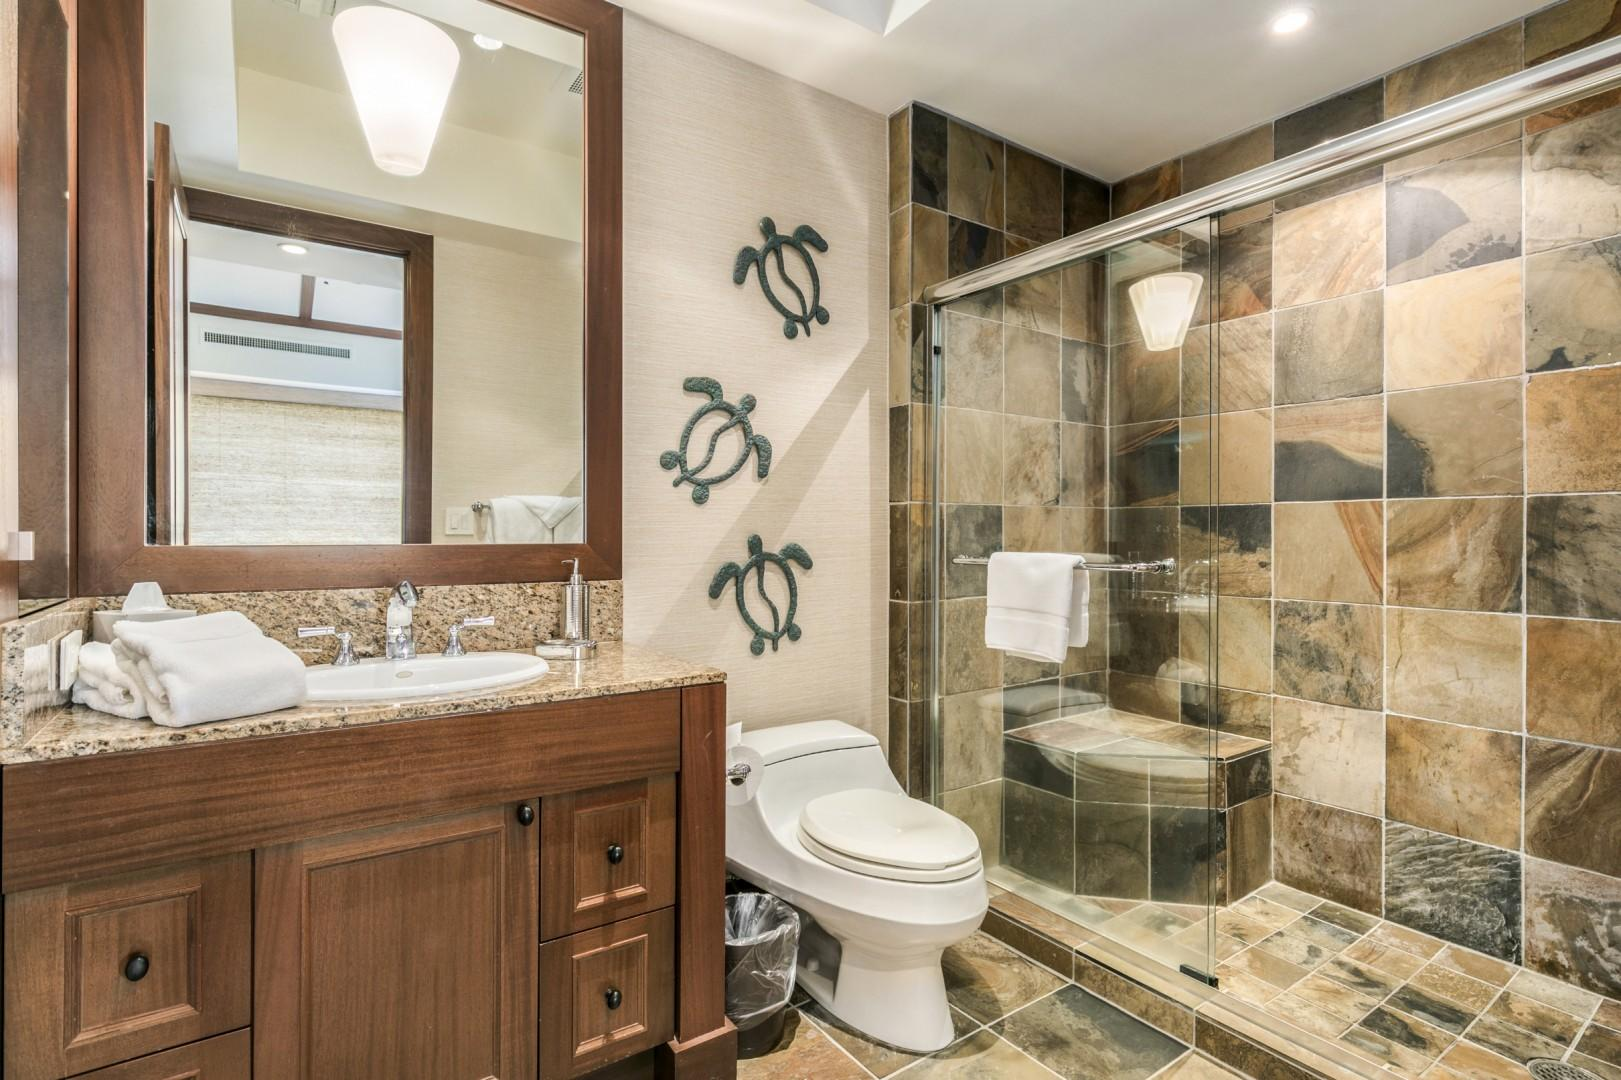 Second Bath with Spacious Tiled Walk-In Shower.